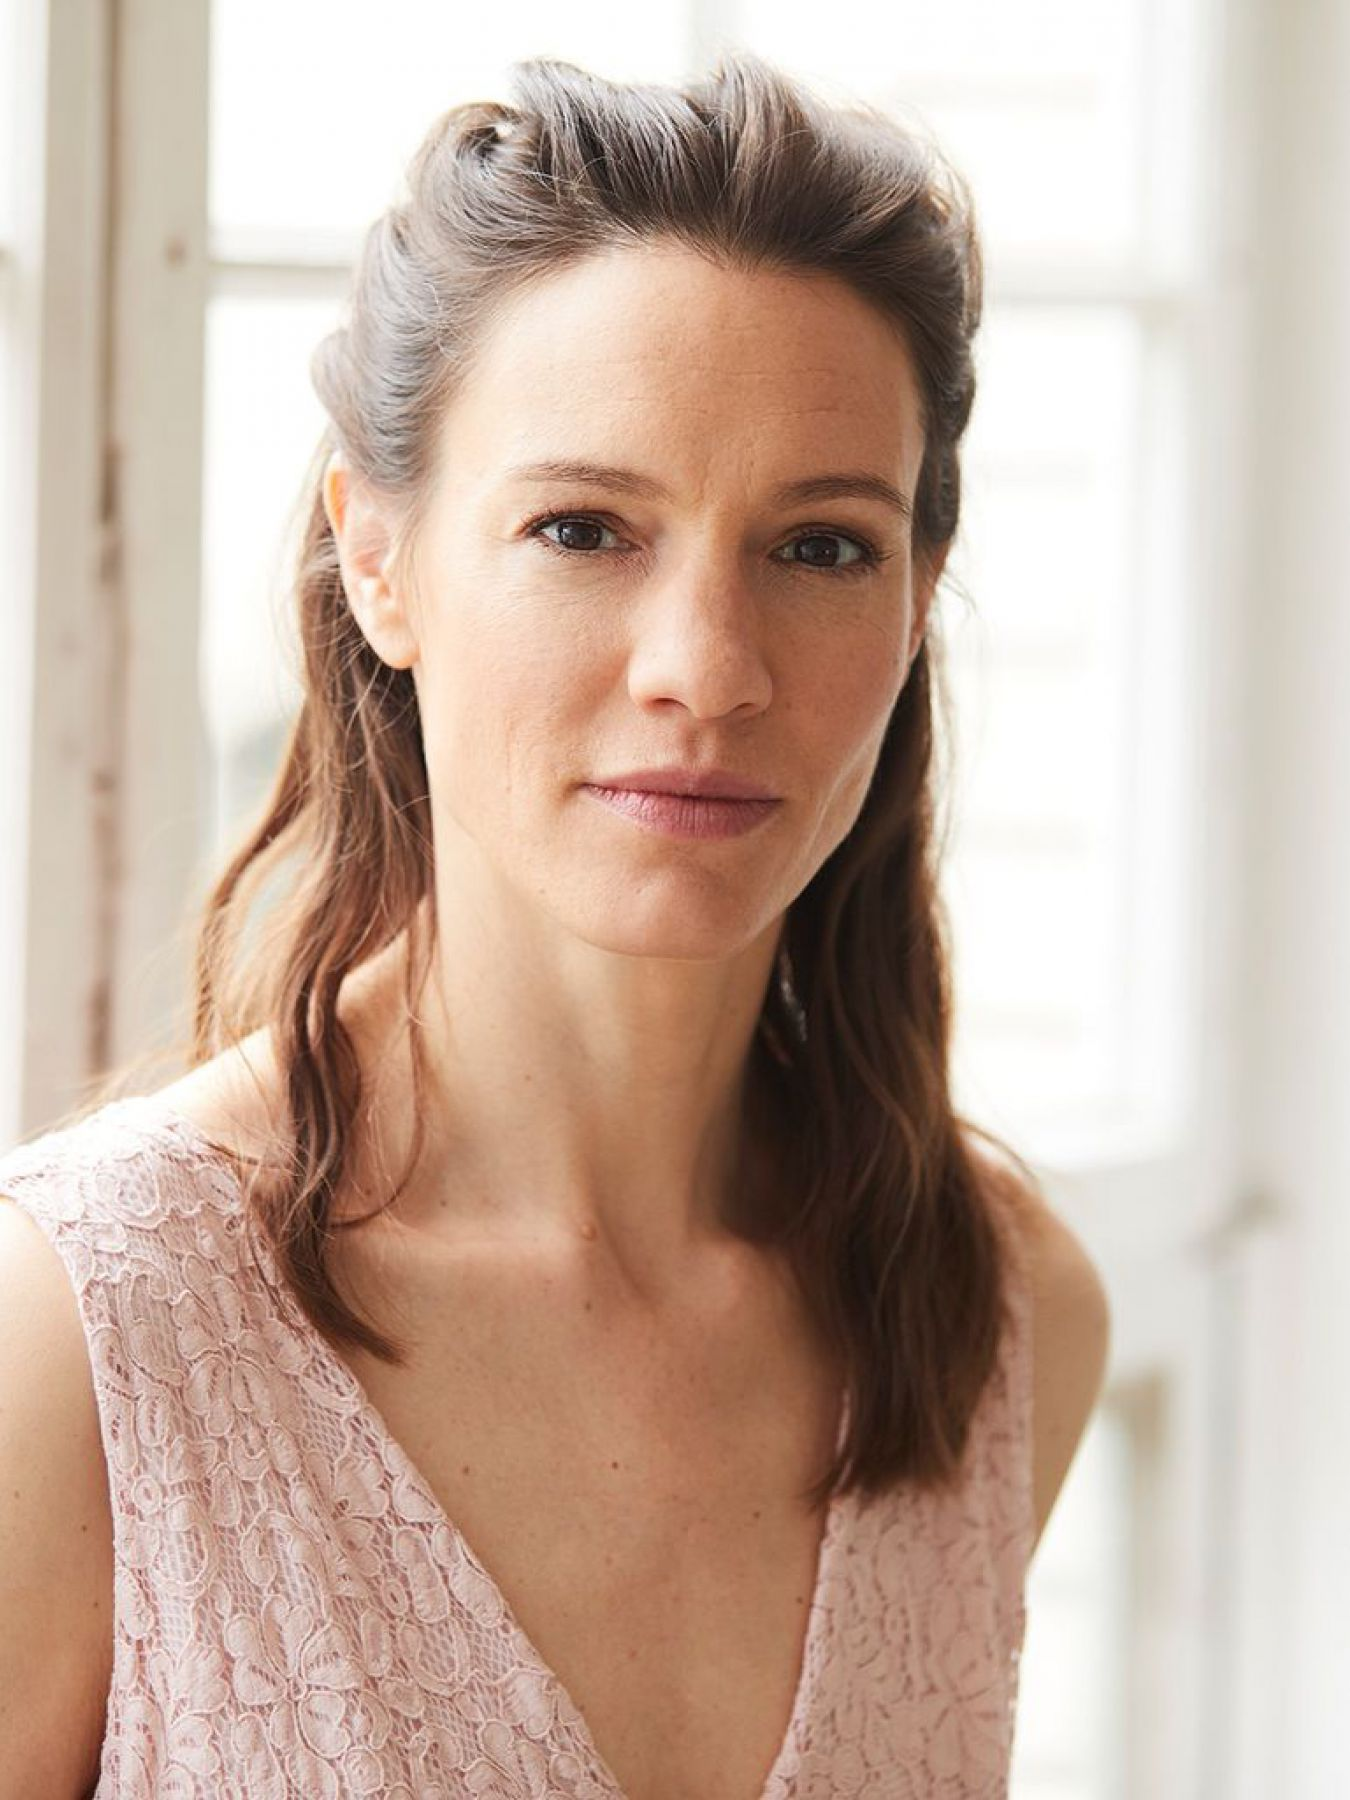 Andrea Cleven - Actrice